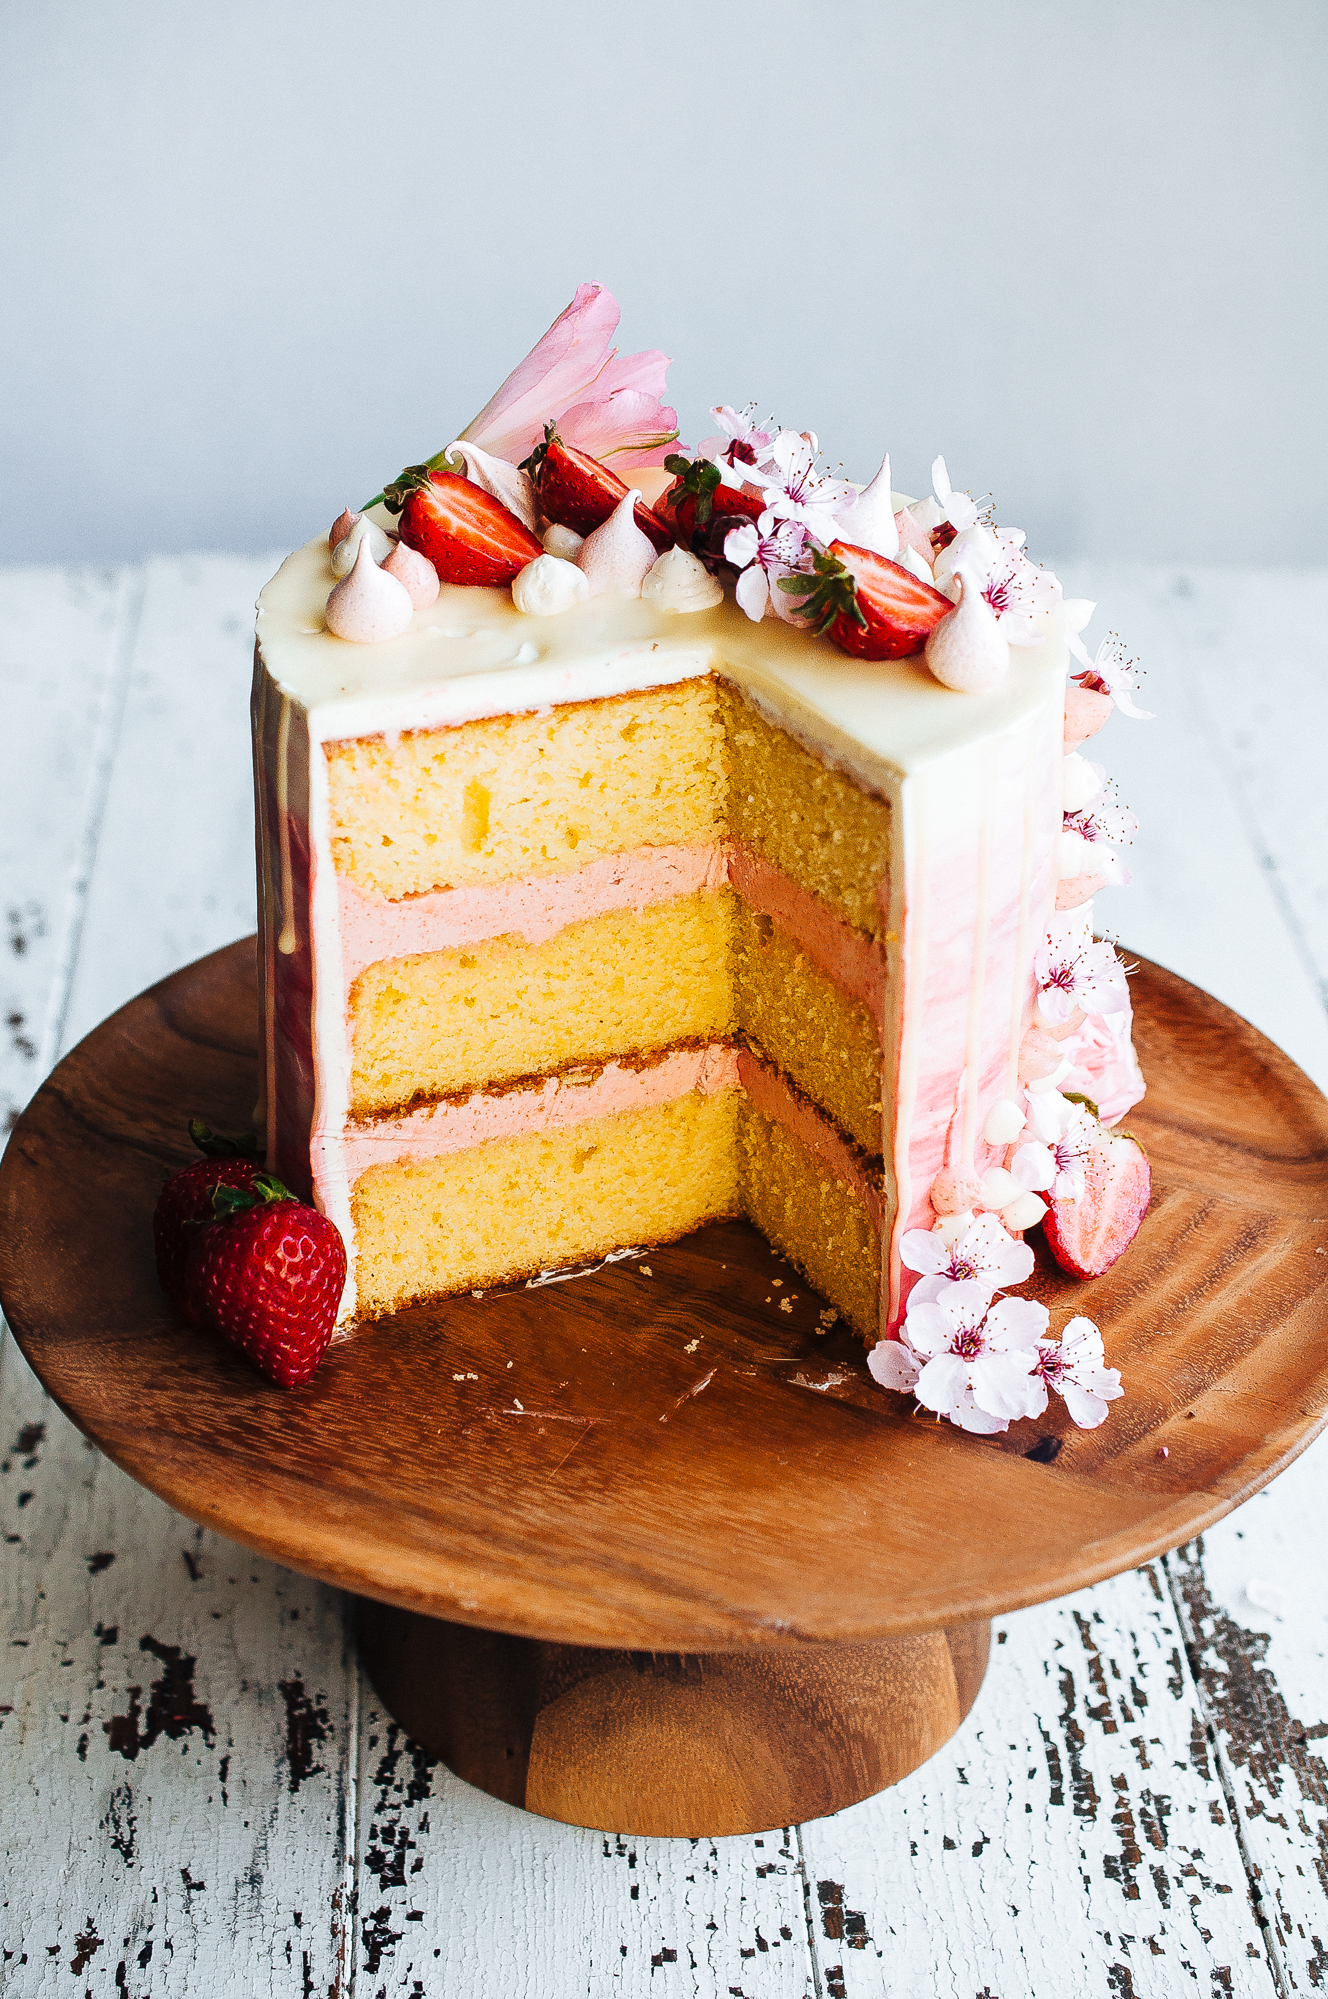 Strawberry and vanilla cake 19.jpg